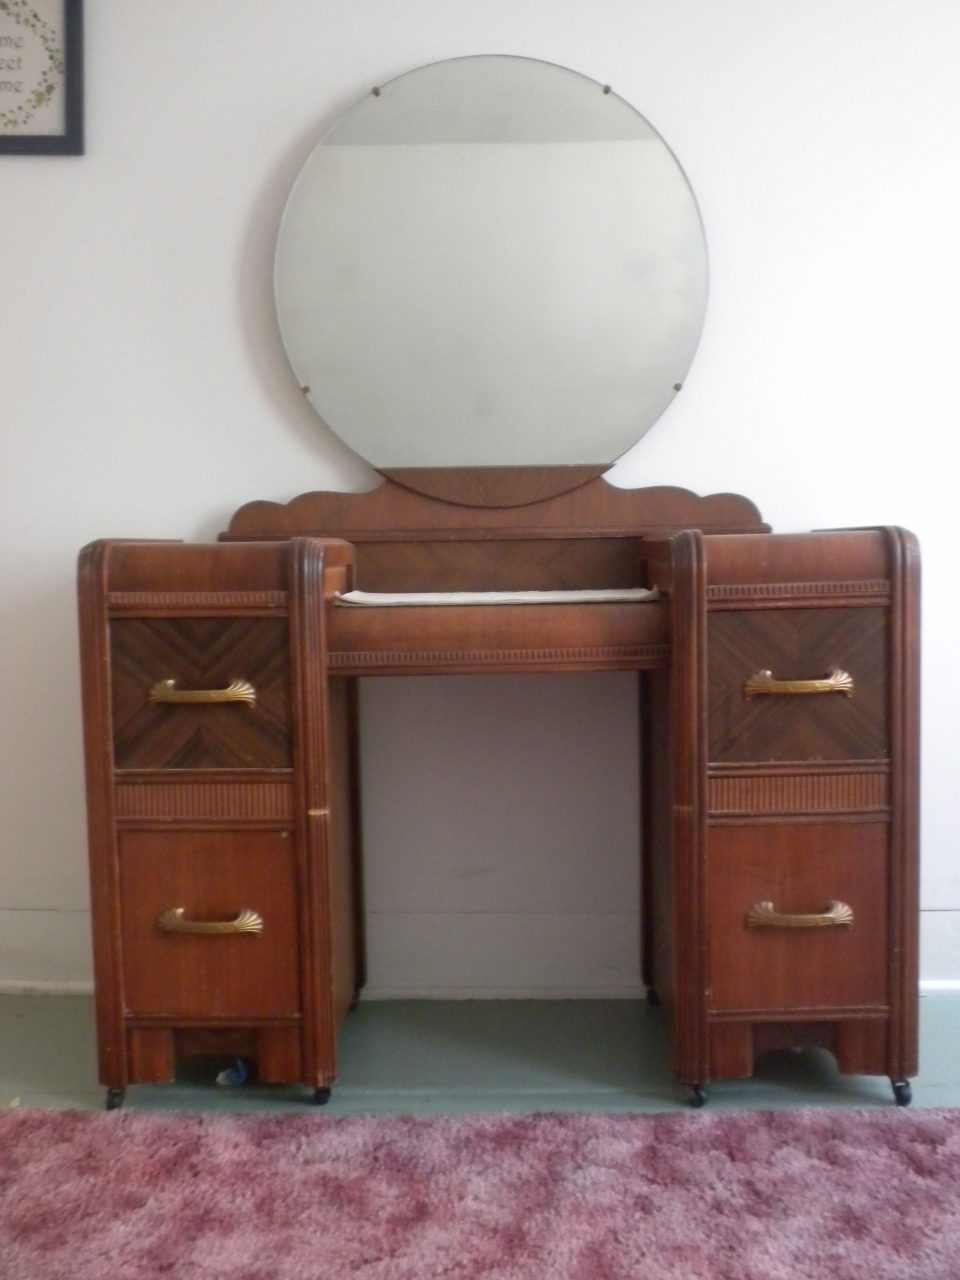 1930 Furniture Styles Have An Art Deco Waterfall Style Bedroom Set